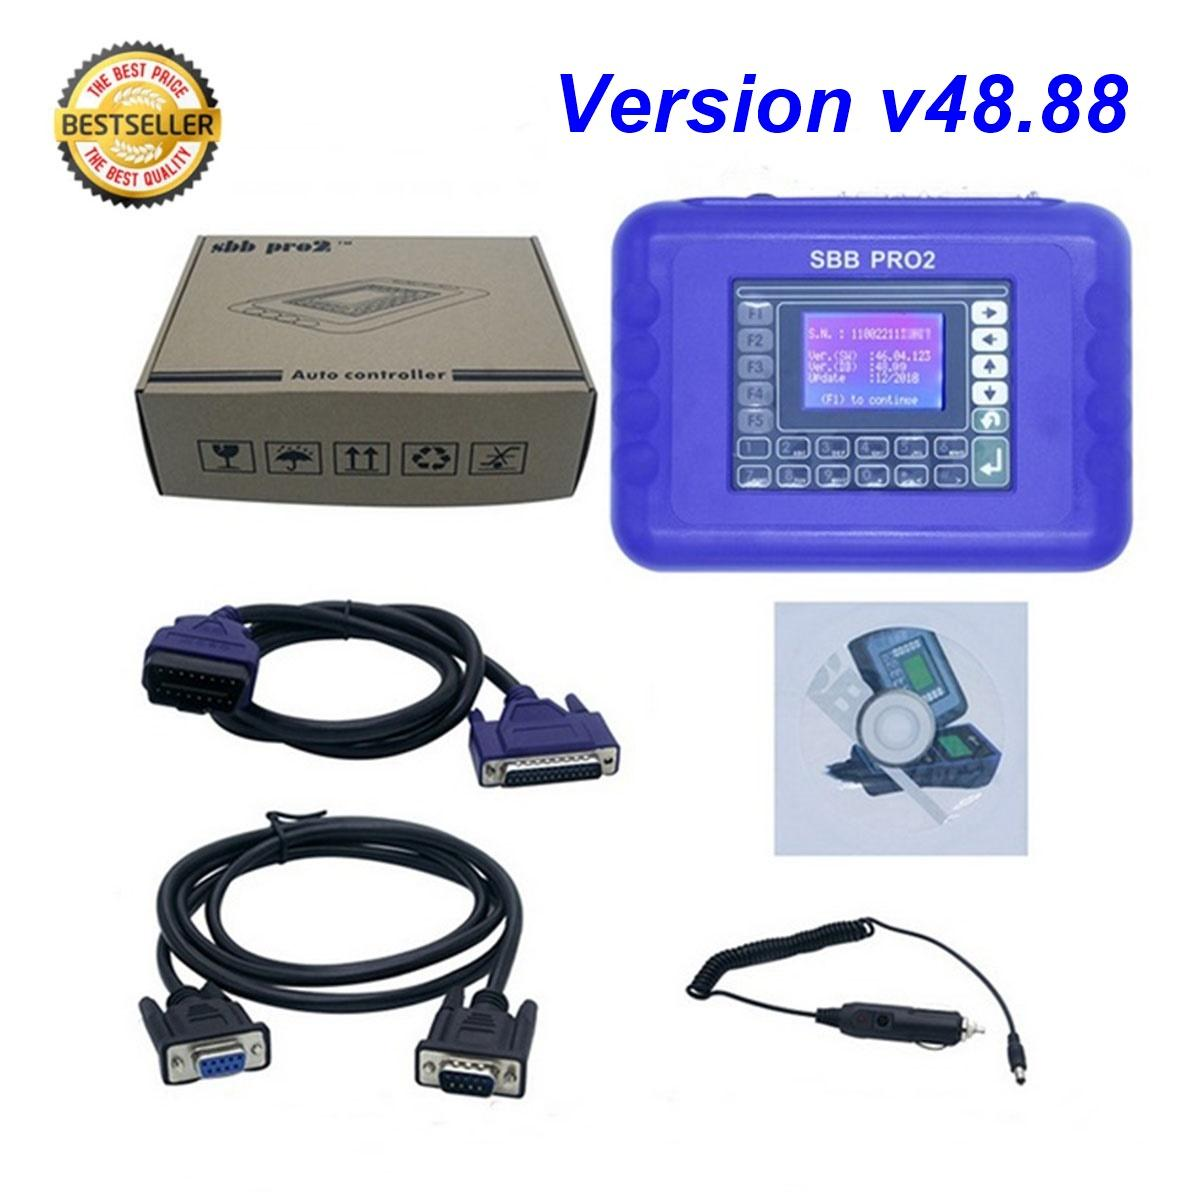 Details about SBB Pro2 Key Programmer Immobilizer Car Auto Key Maker NEWEST  VERSION v48 88